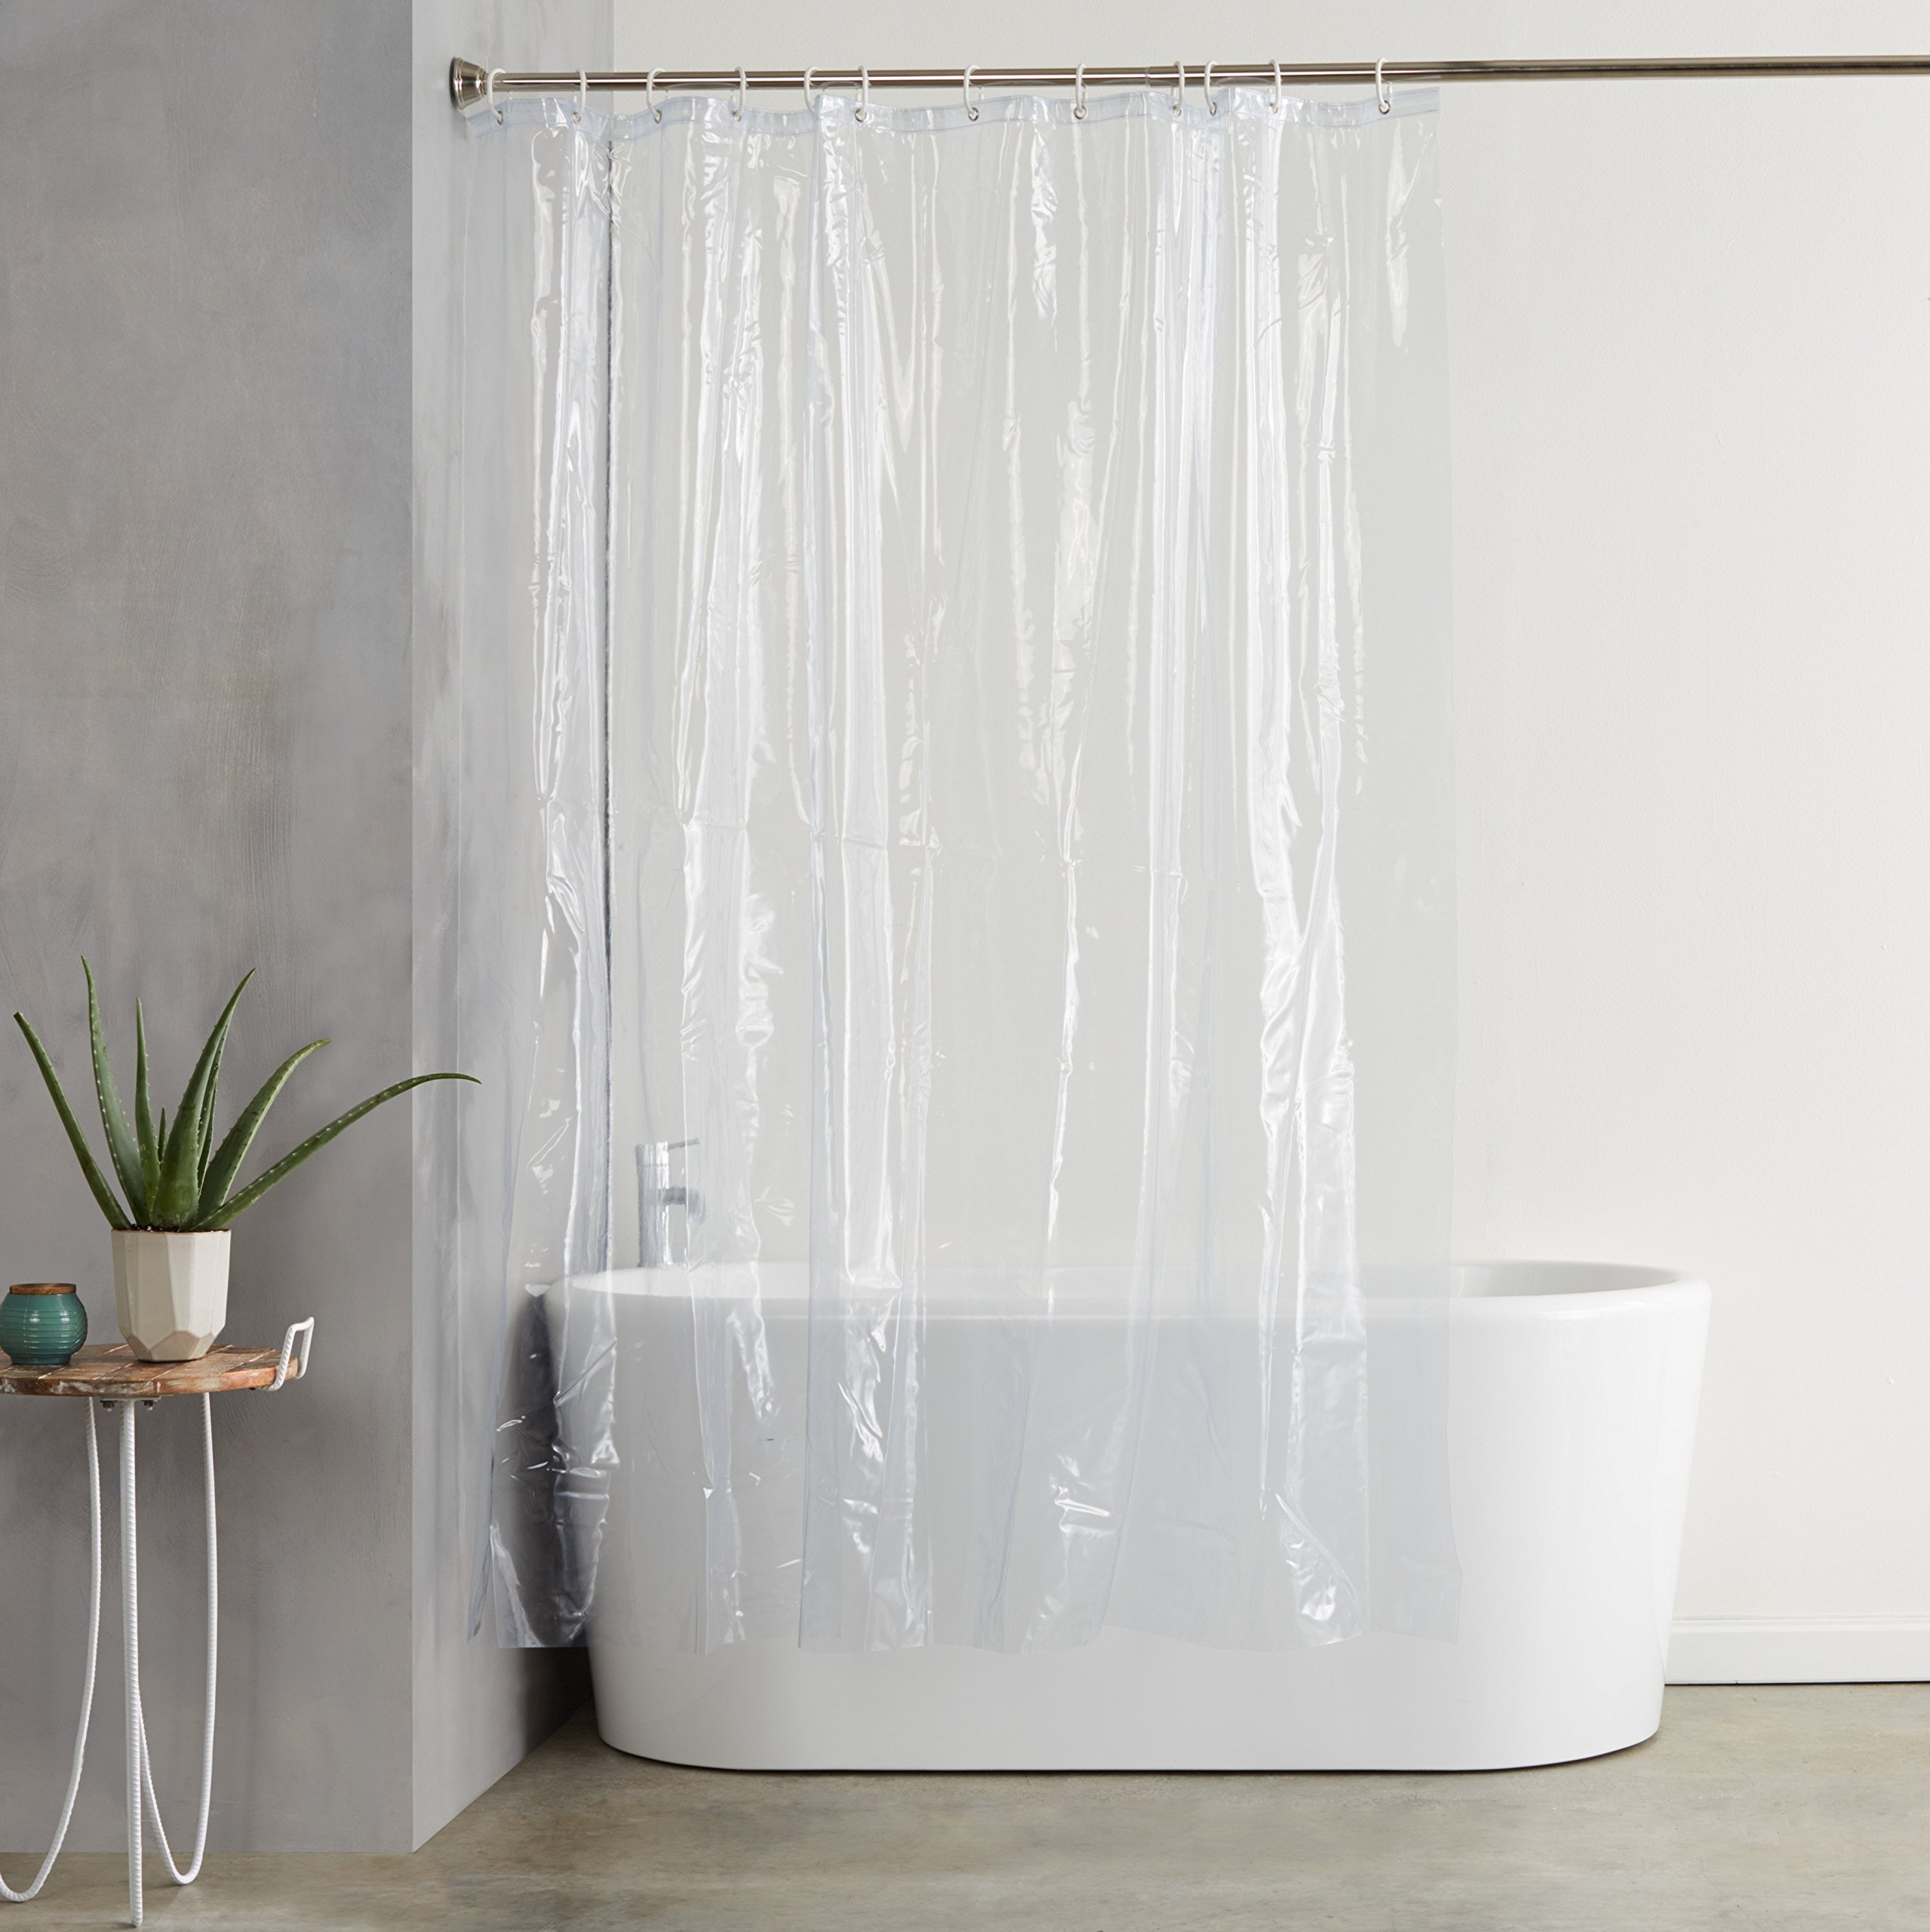 AmazonBasics Shower Curtain with Hooks (Grey Stripe) and Shower Curtain Liner (Clear) Set by AmazonBasics (Image #3)